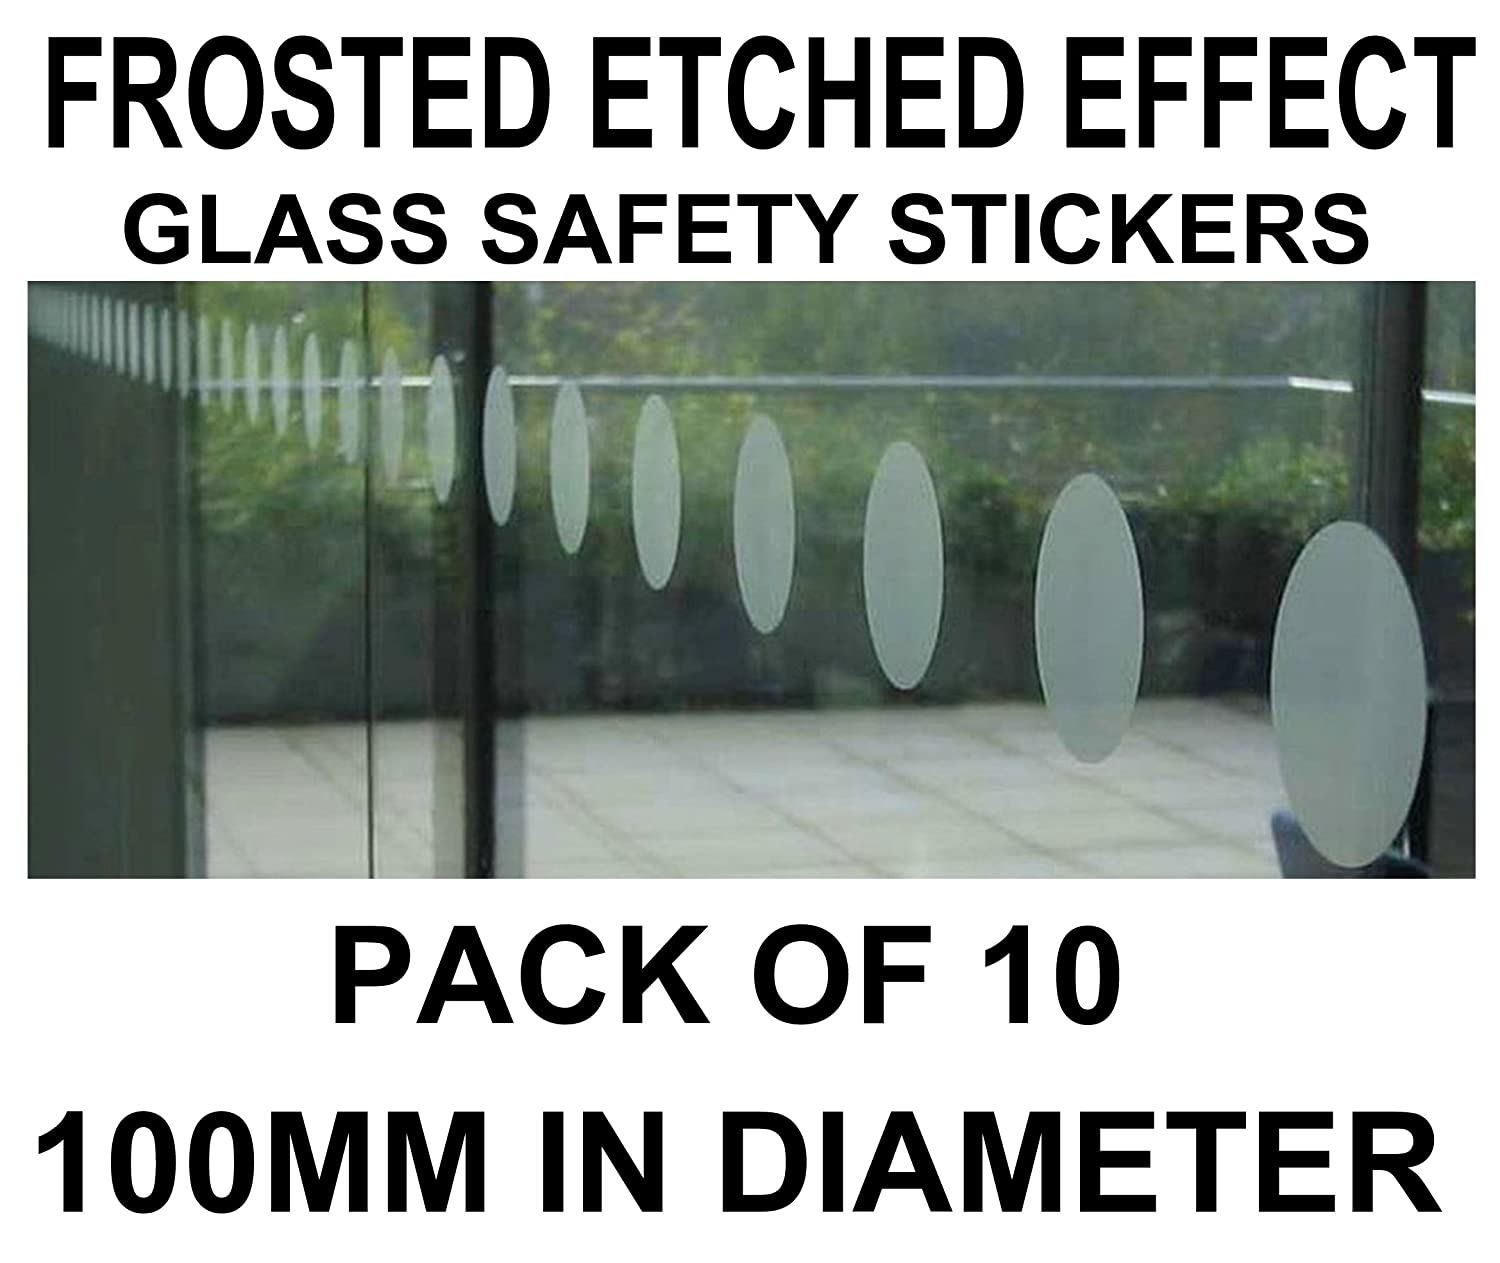 Circular frosted etched effect vinyl safety stickers circles window glass shop business pack of 10 100mm in diameter amazon co uk office products